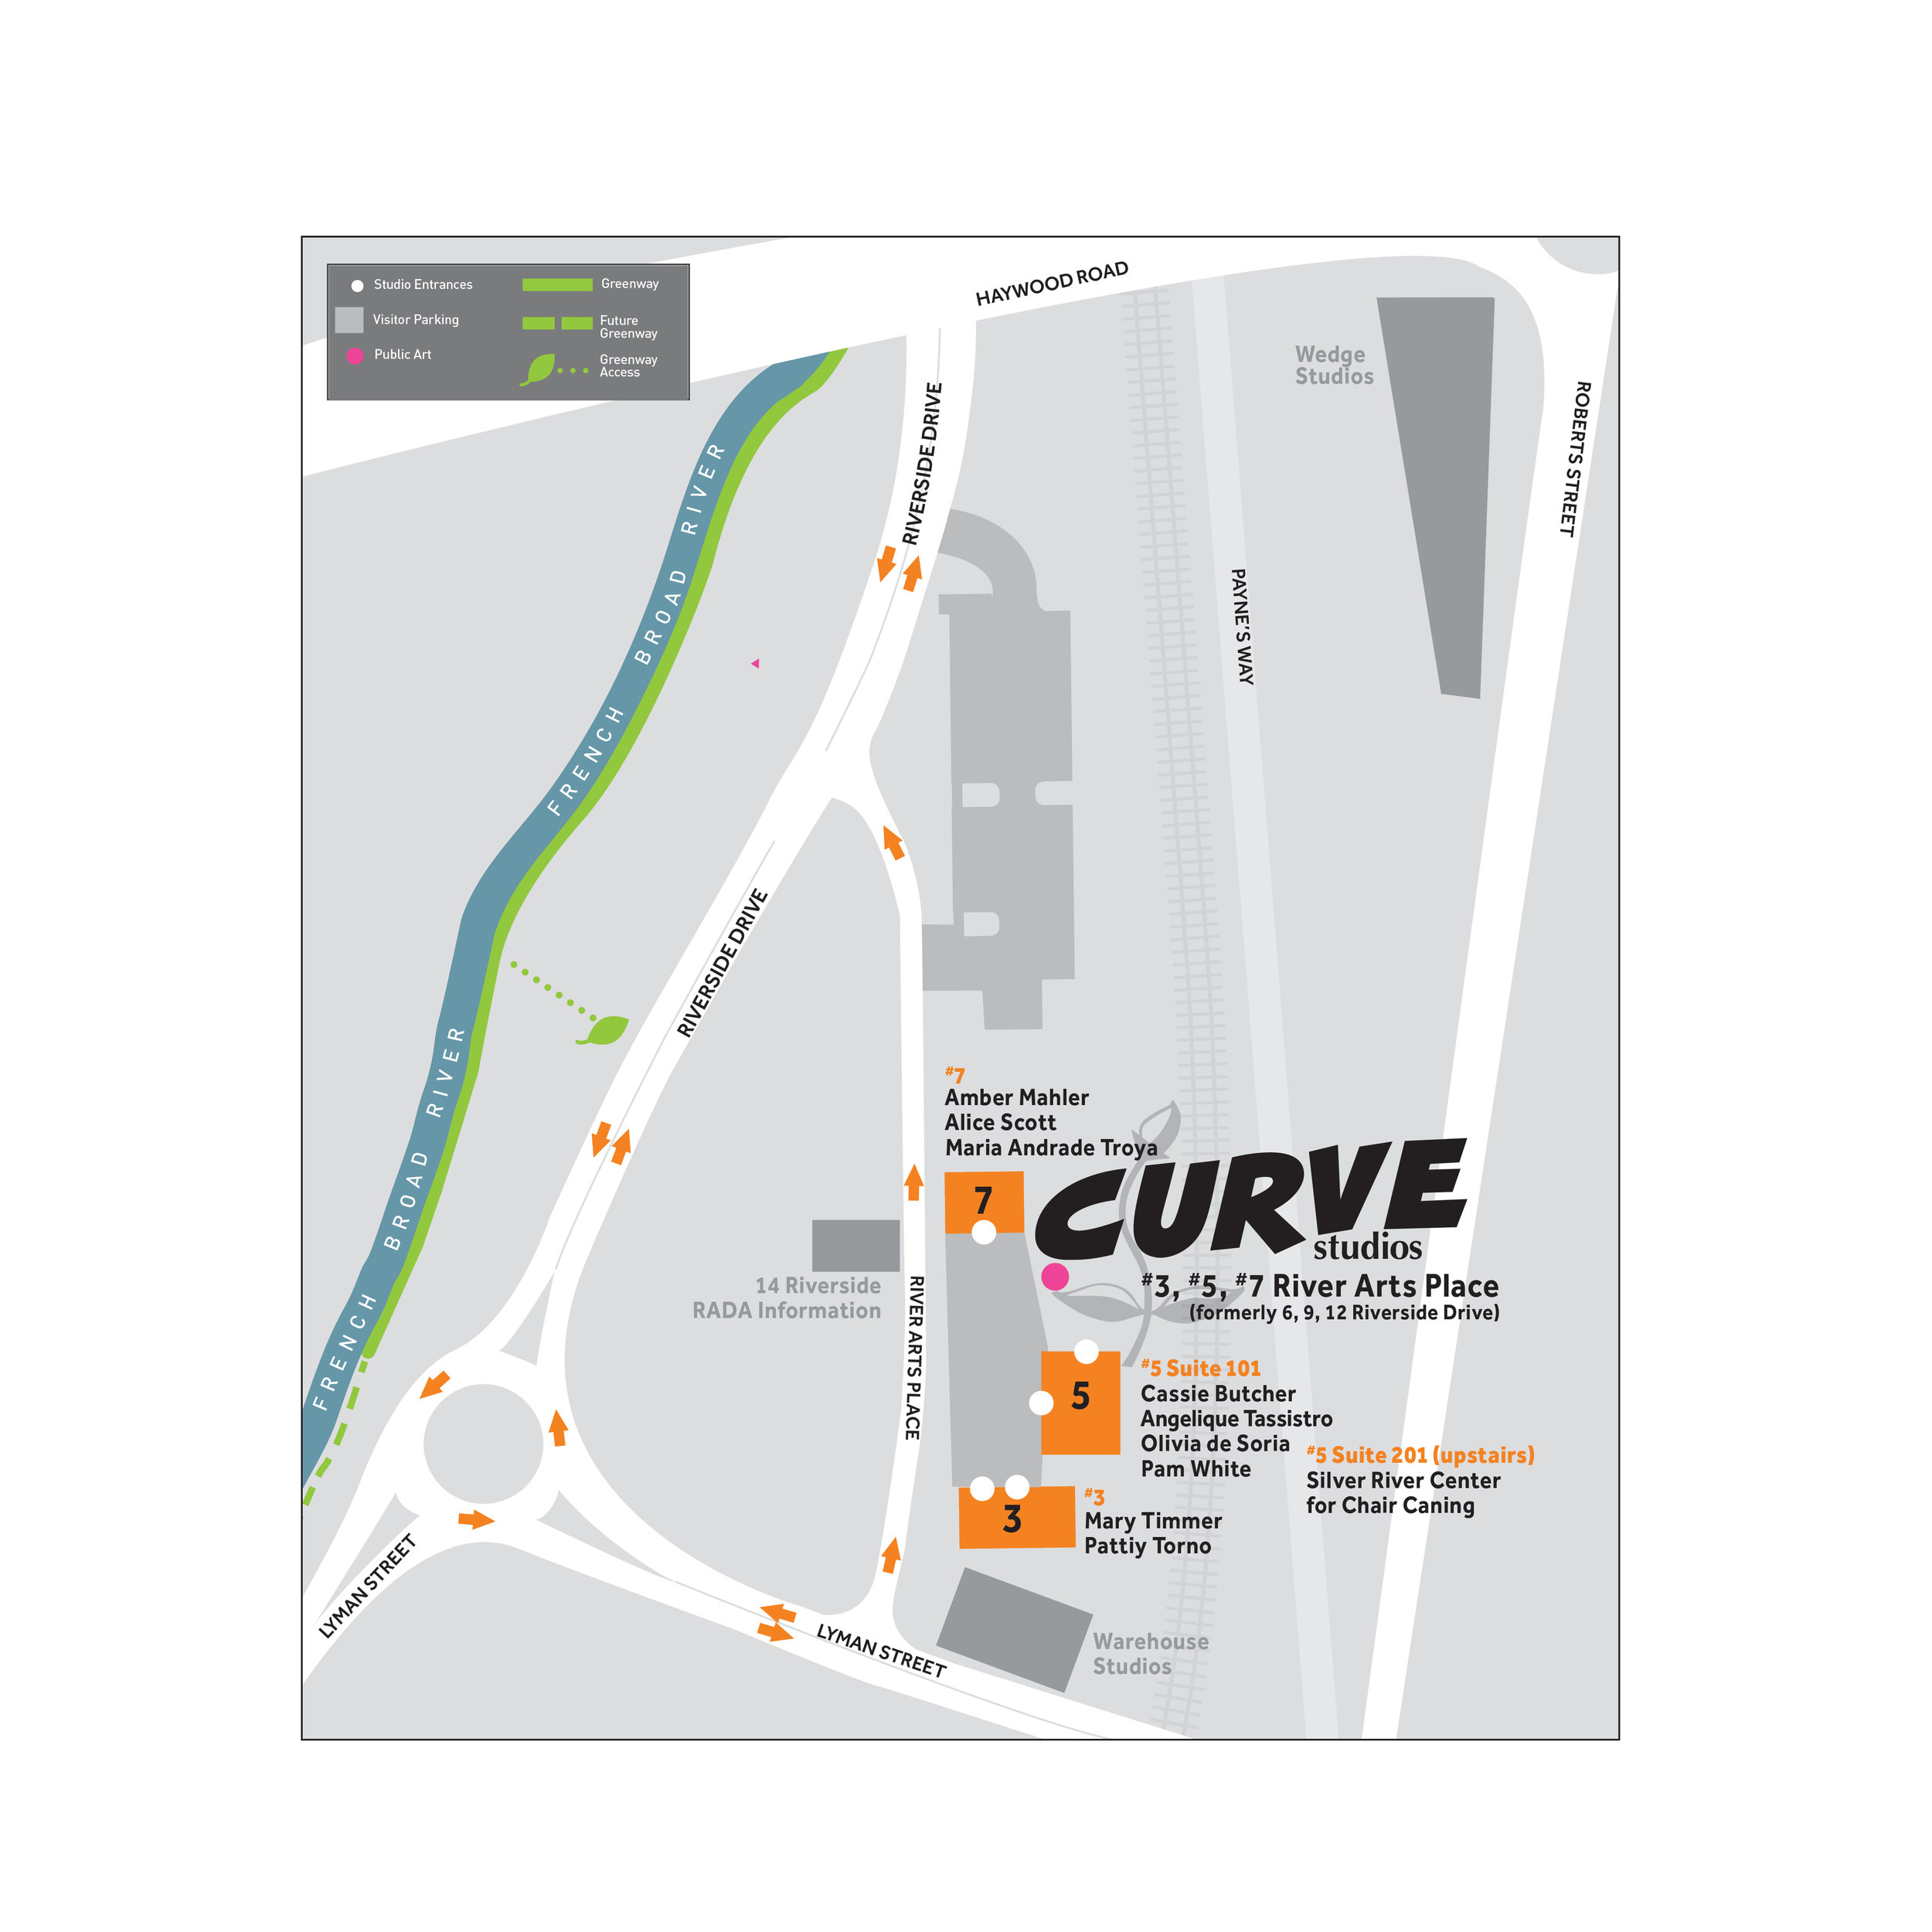 We are in construction mode right now, so follow the detour signs!